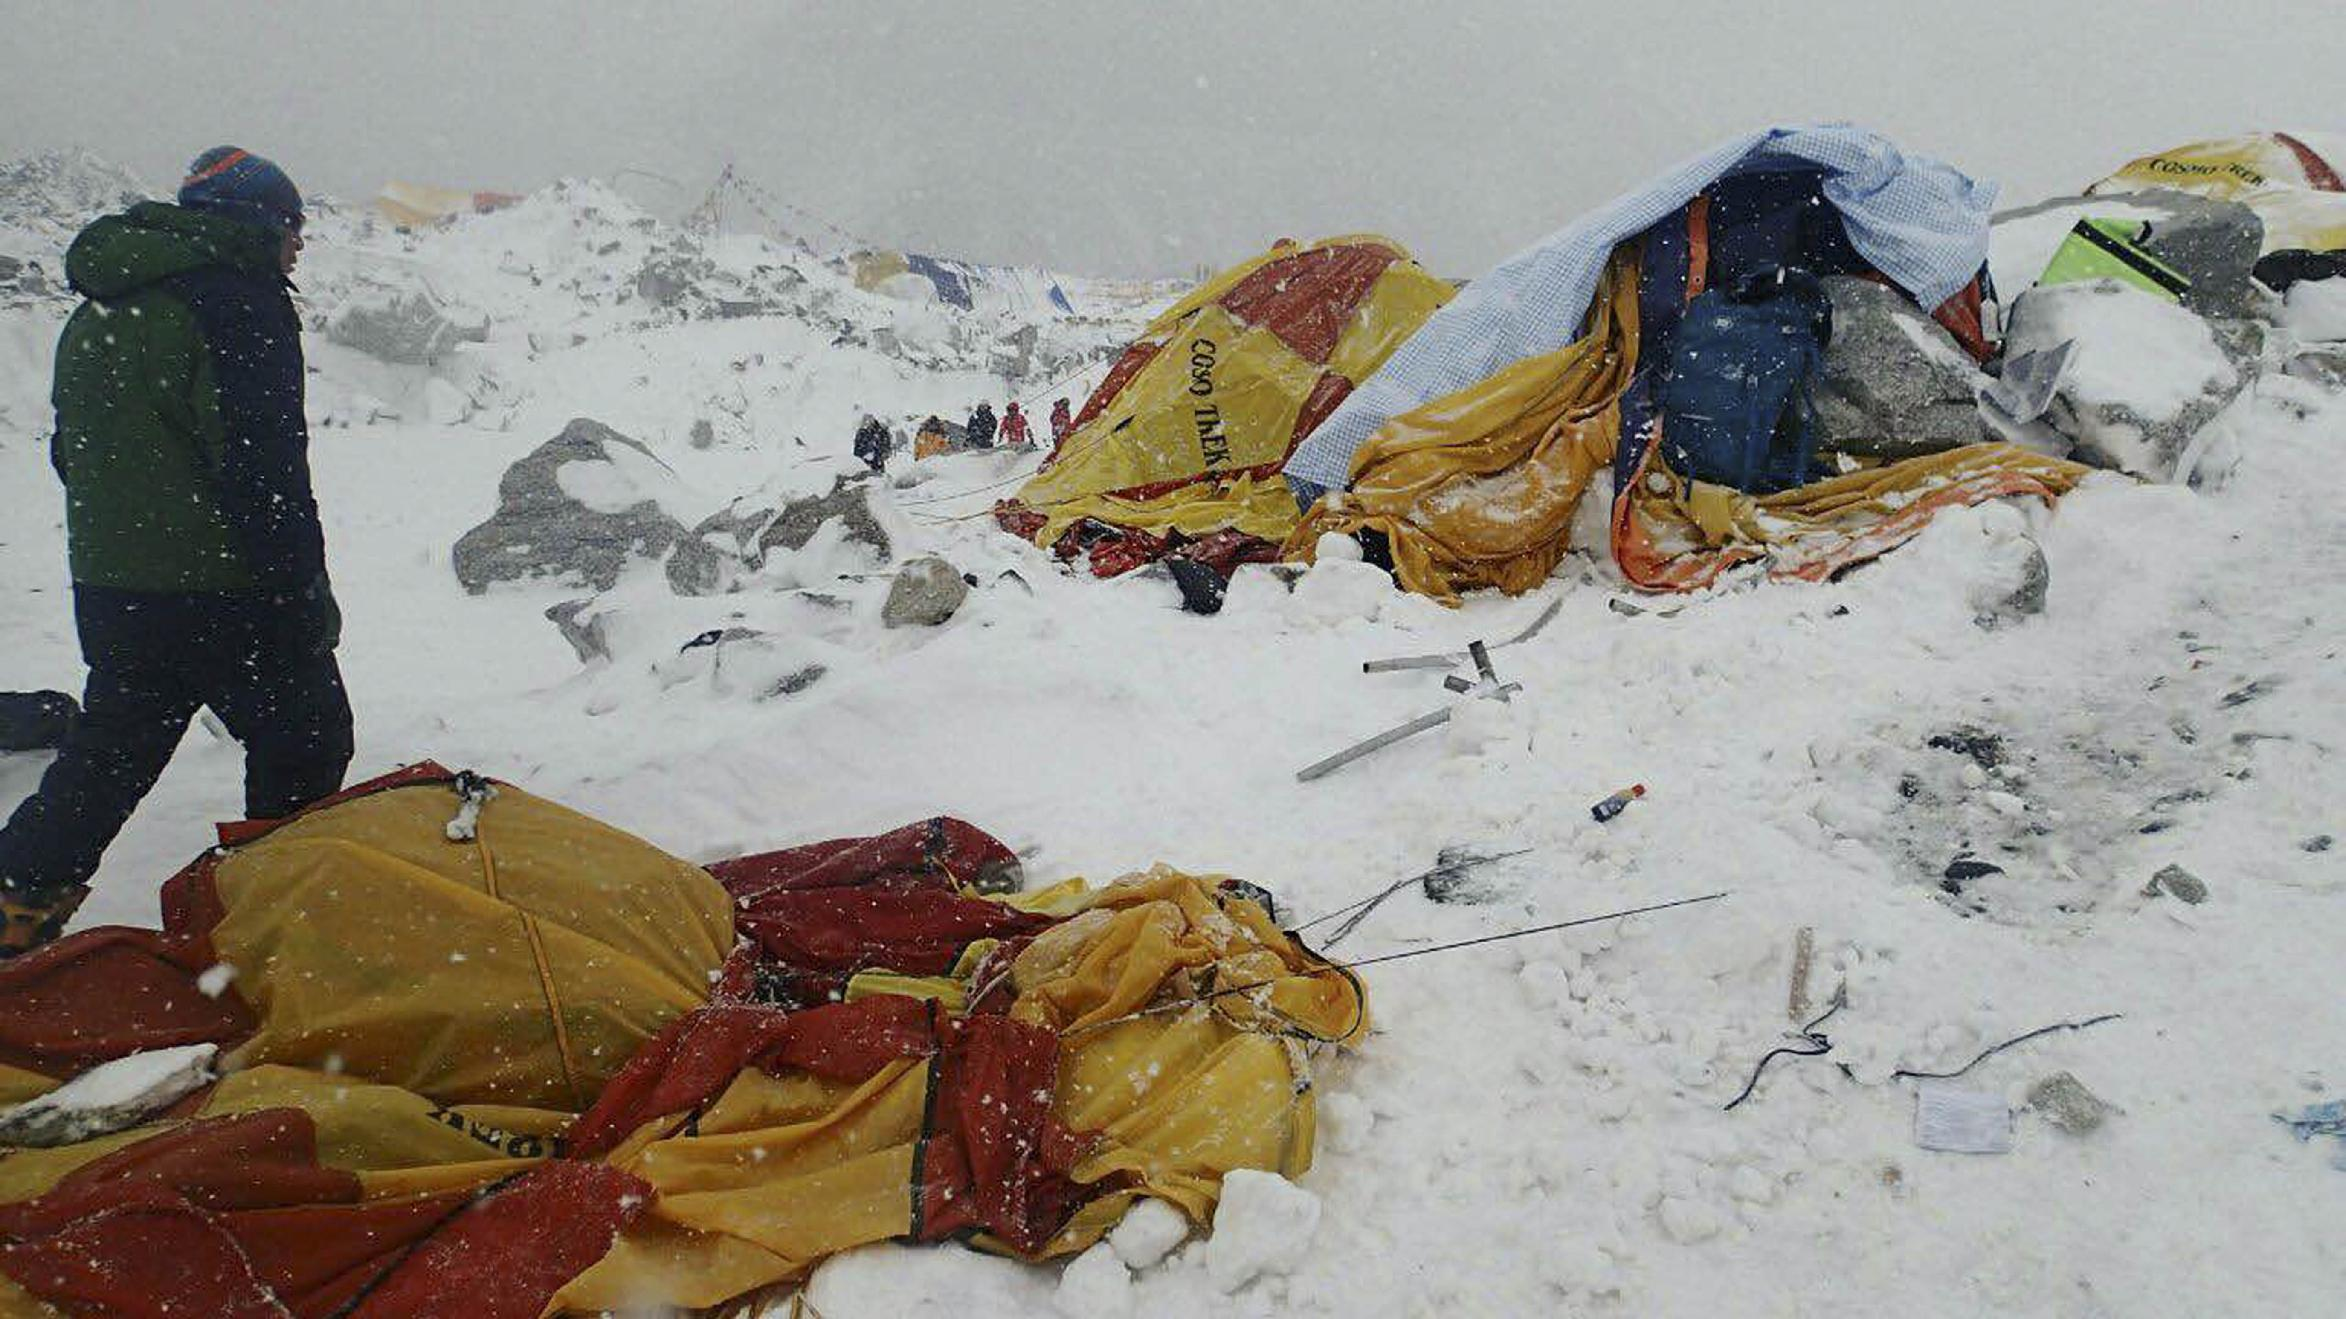 Avalanche sweeps Everest region, killing 17, injuring 61